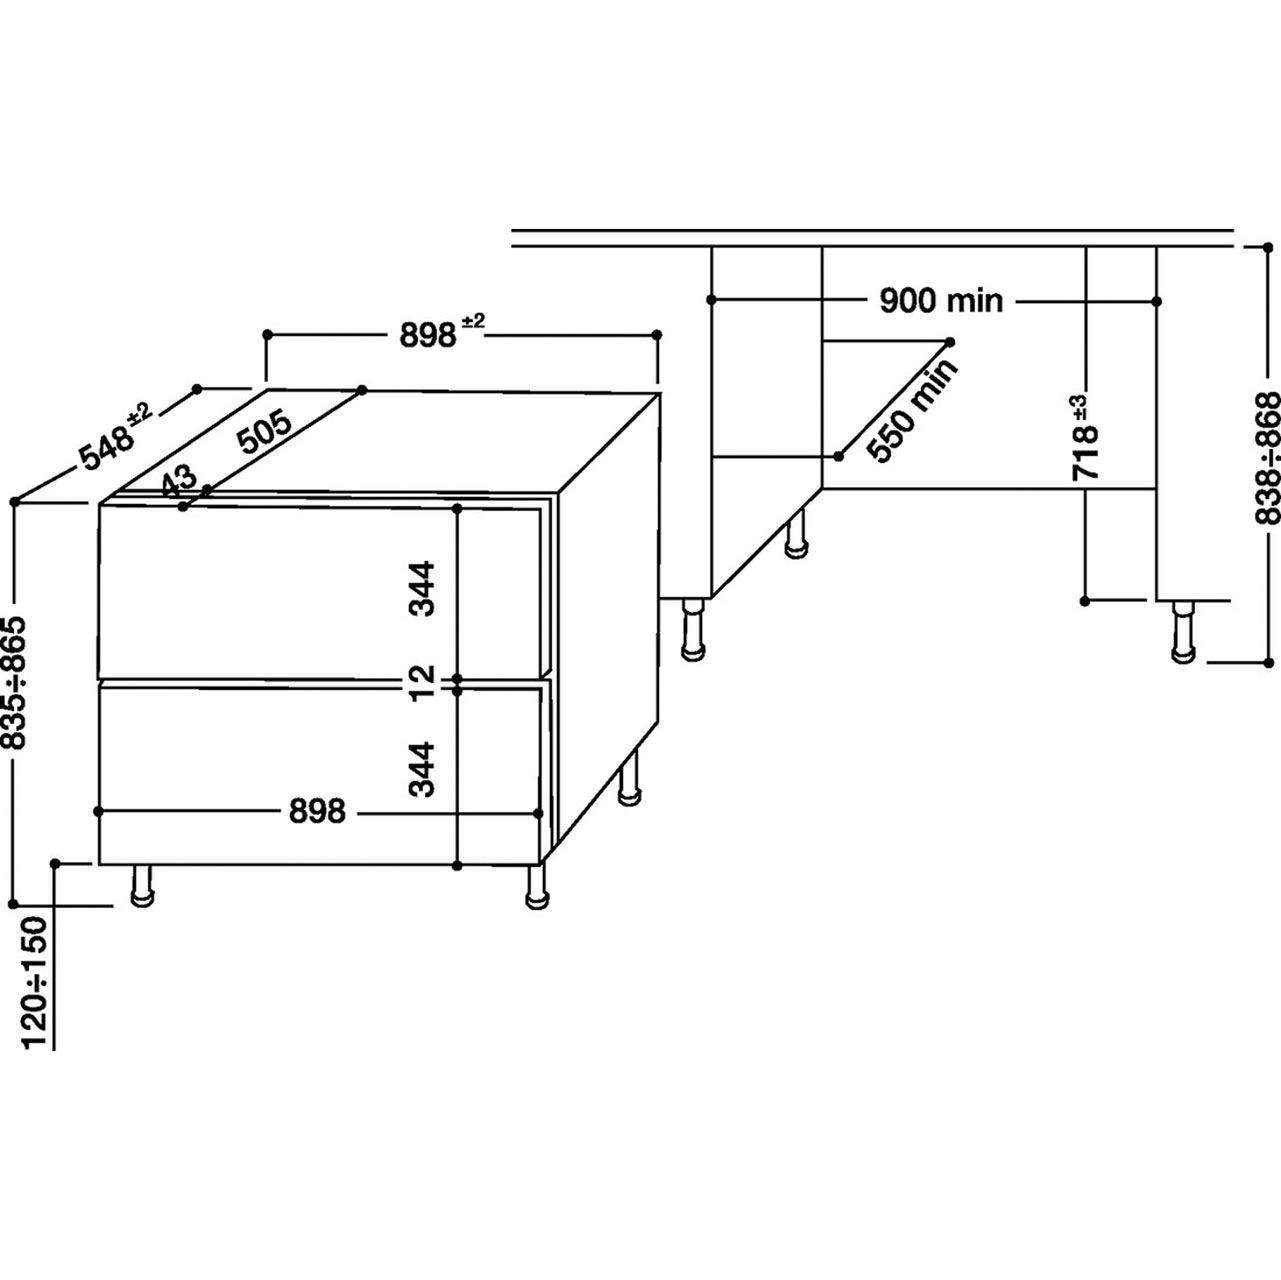 Ncd191i Hotpoint Built Under Fridge 150l Air Conditioner Wiring Diagram